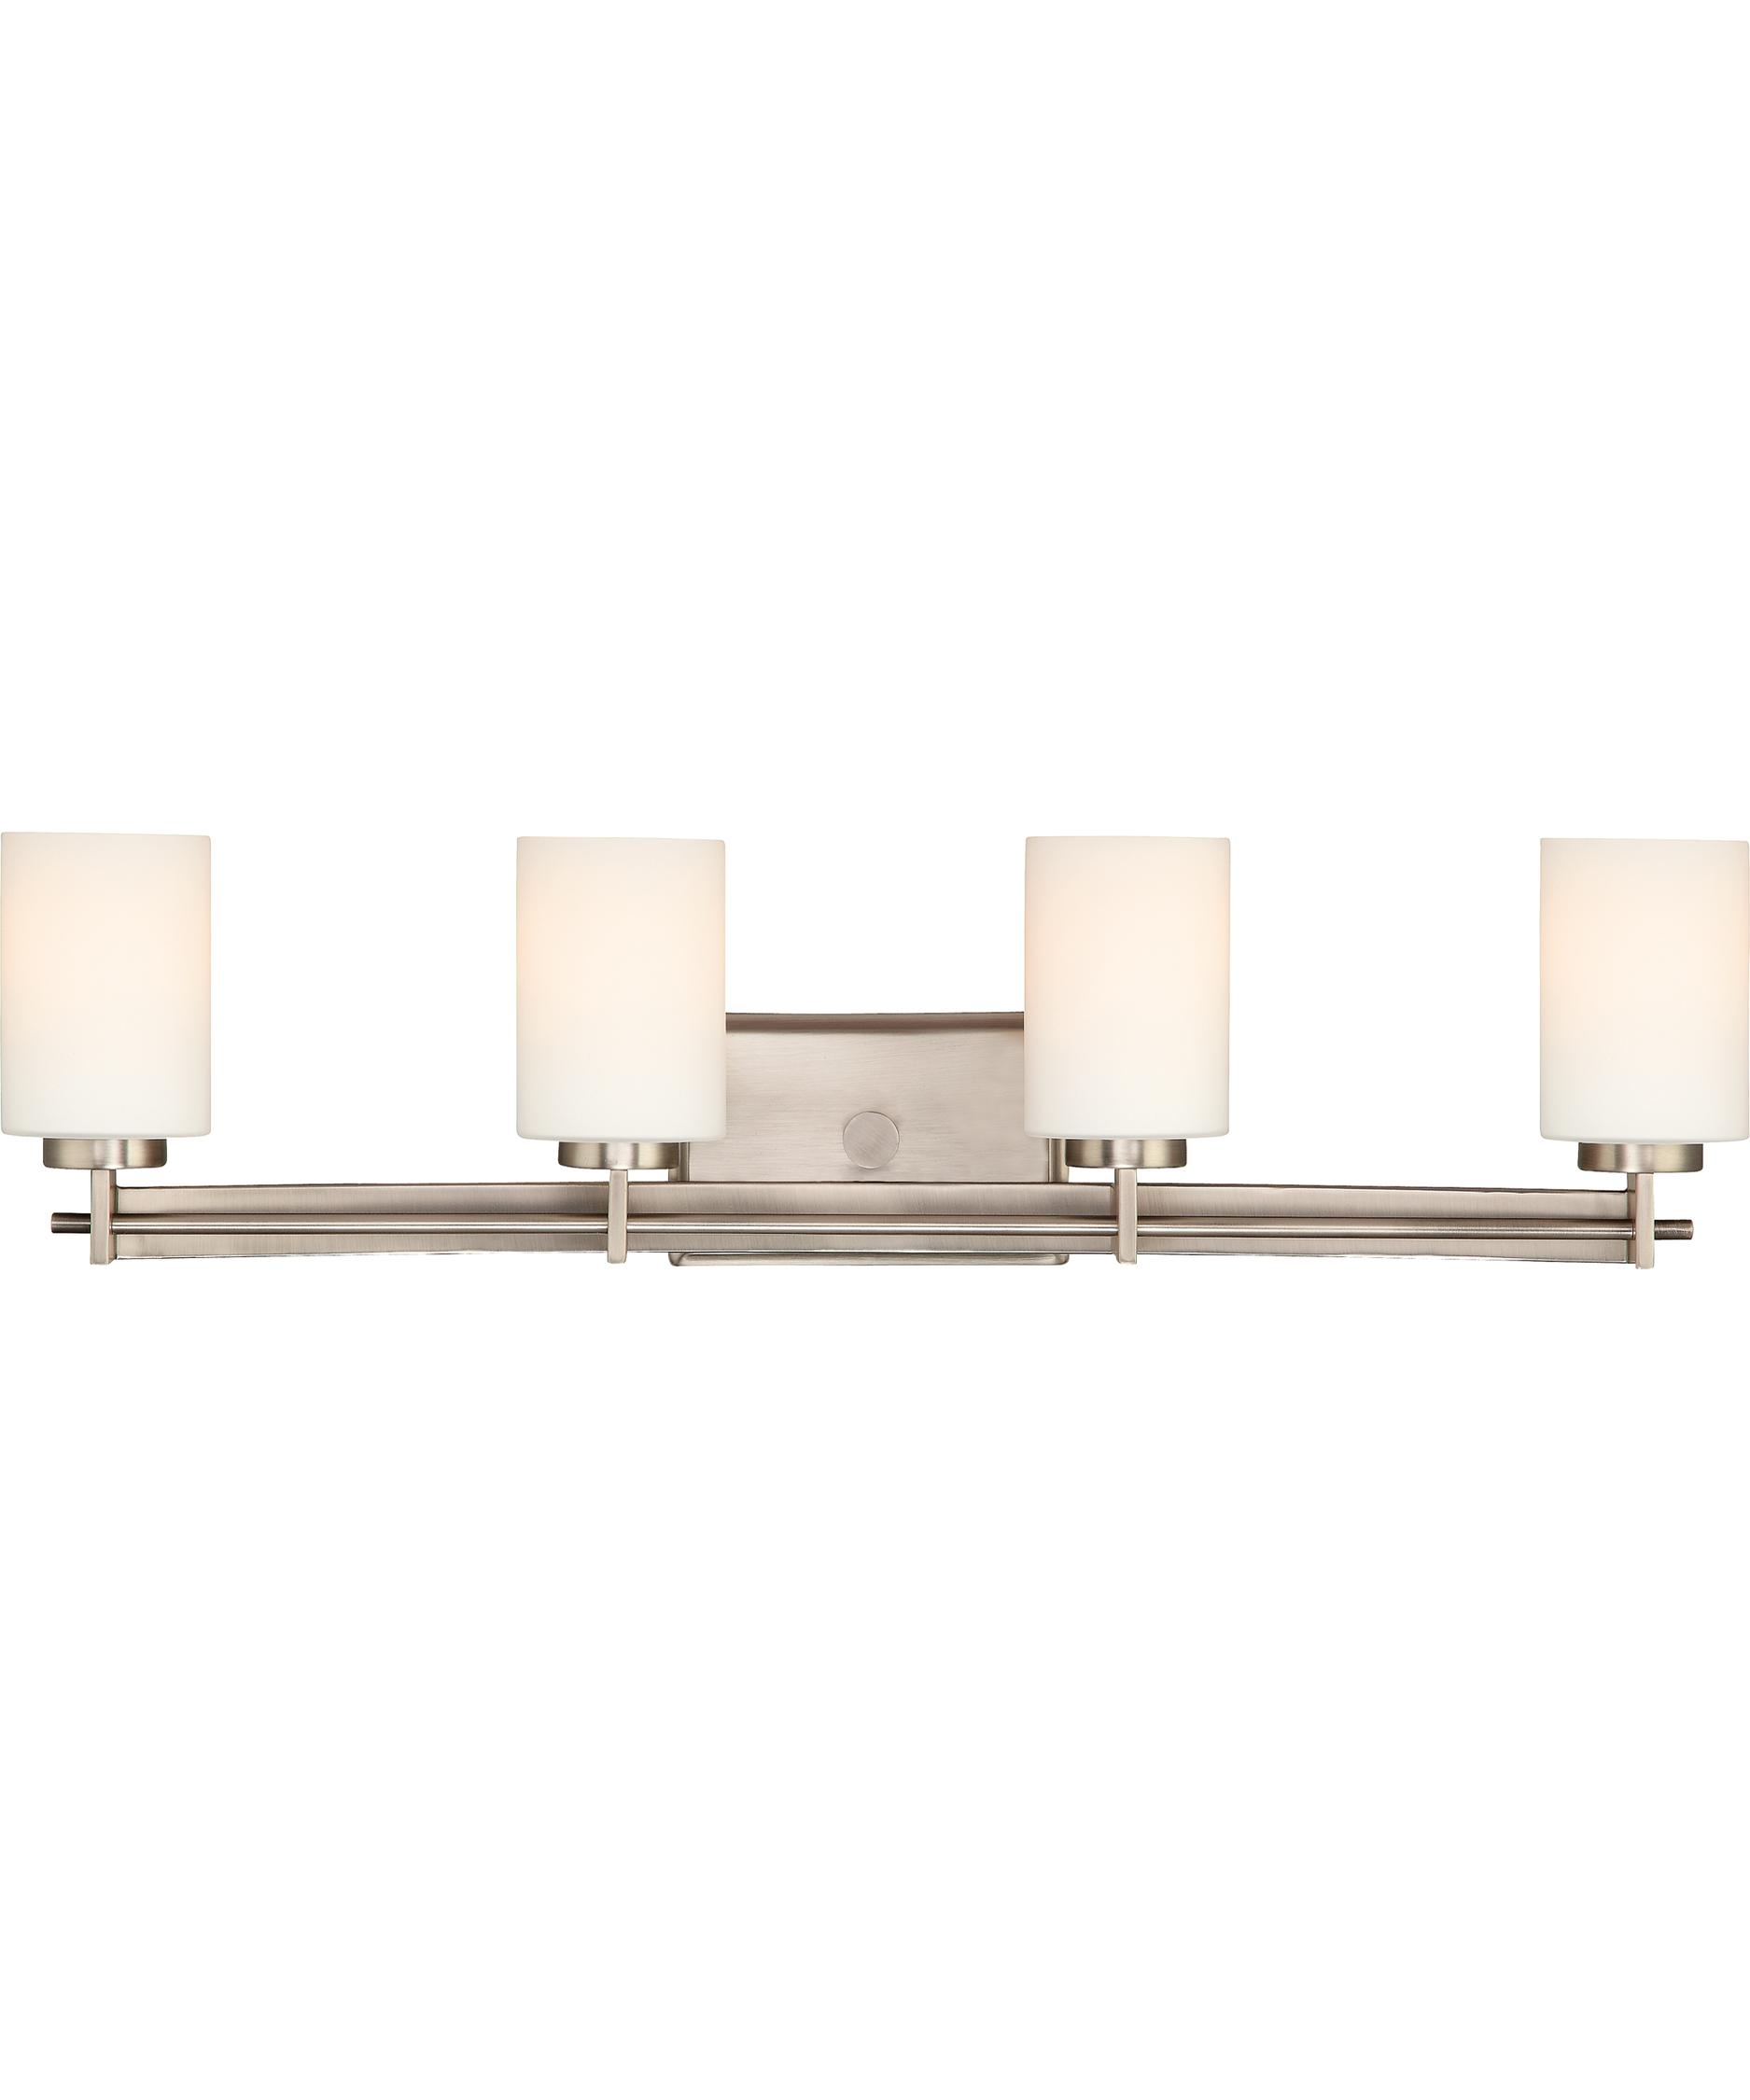 Quoizel Bathroom Light Fixtures quoizel ty8604 taylor 30 inch wide bath vanity light | capitol